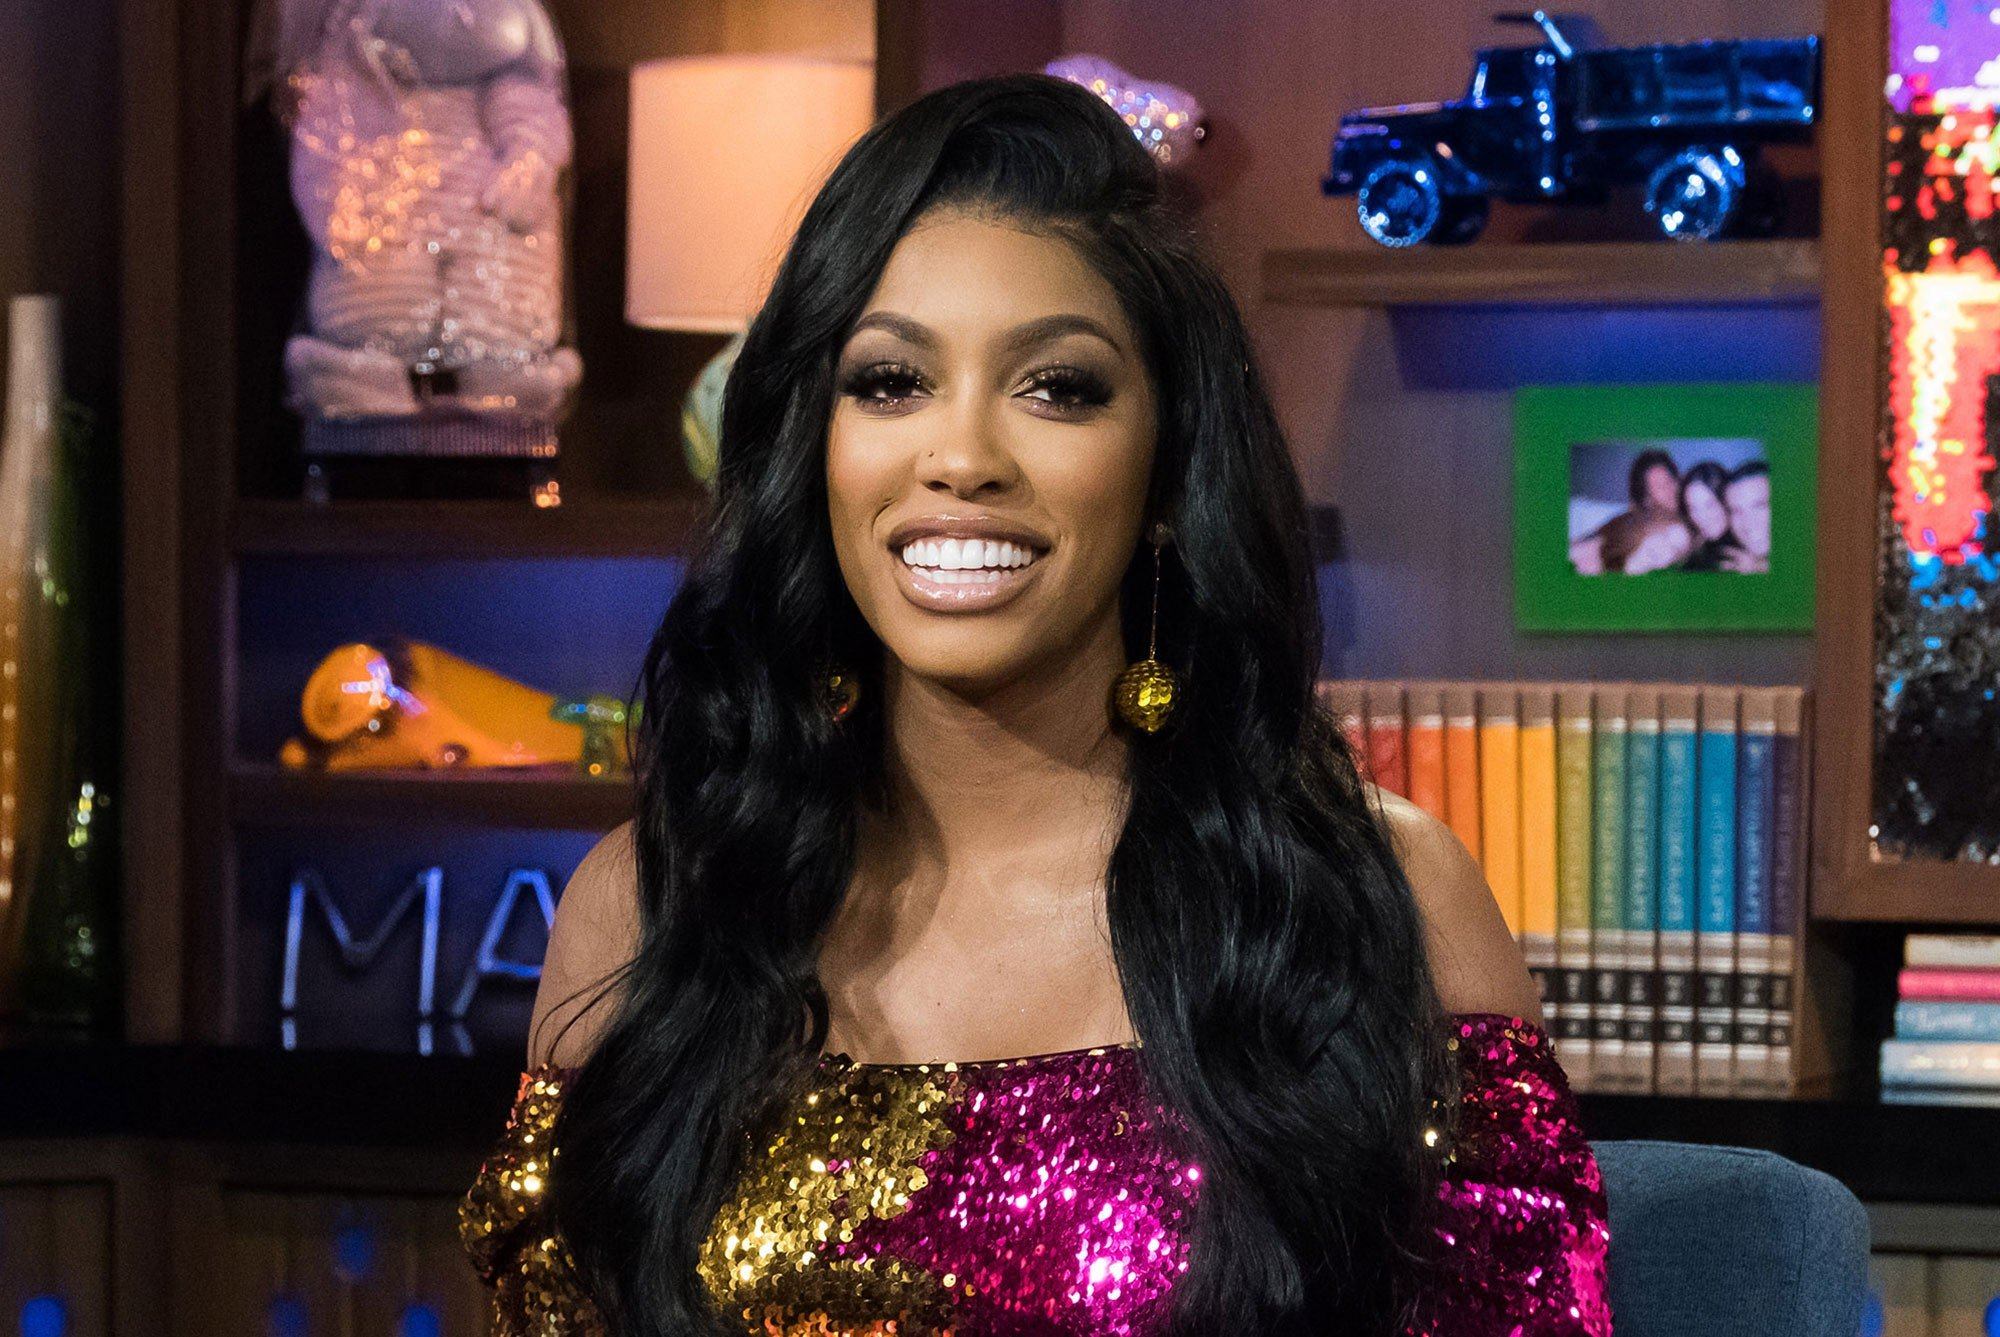 Porsha Williams Shares The Cutest Video Featuring Pilar Jhena